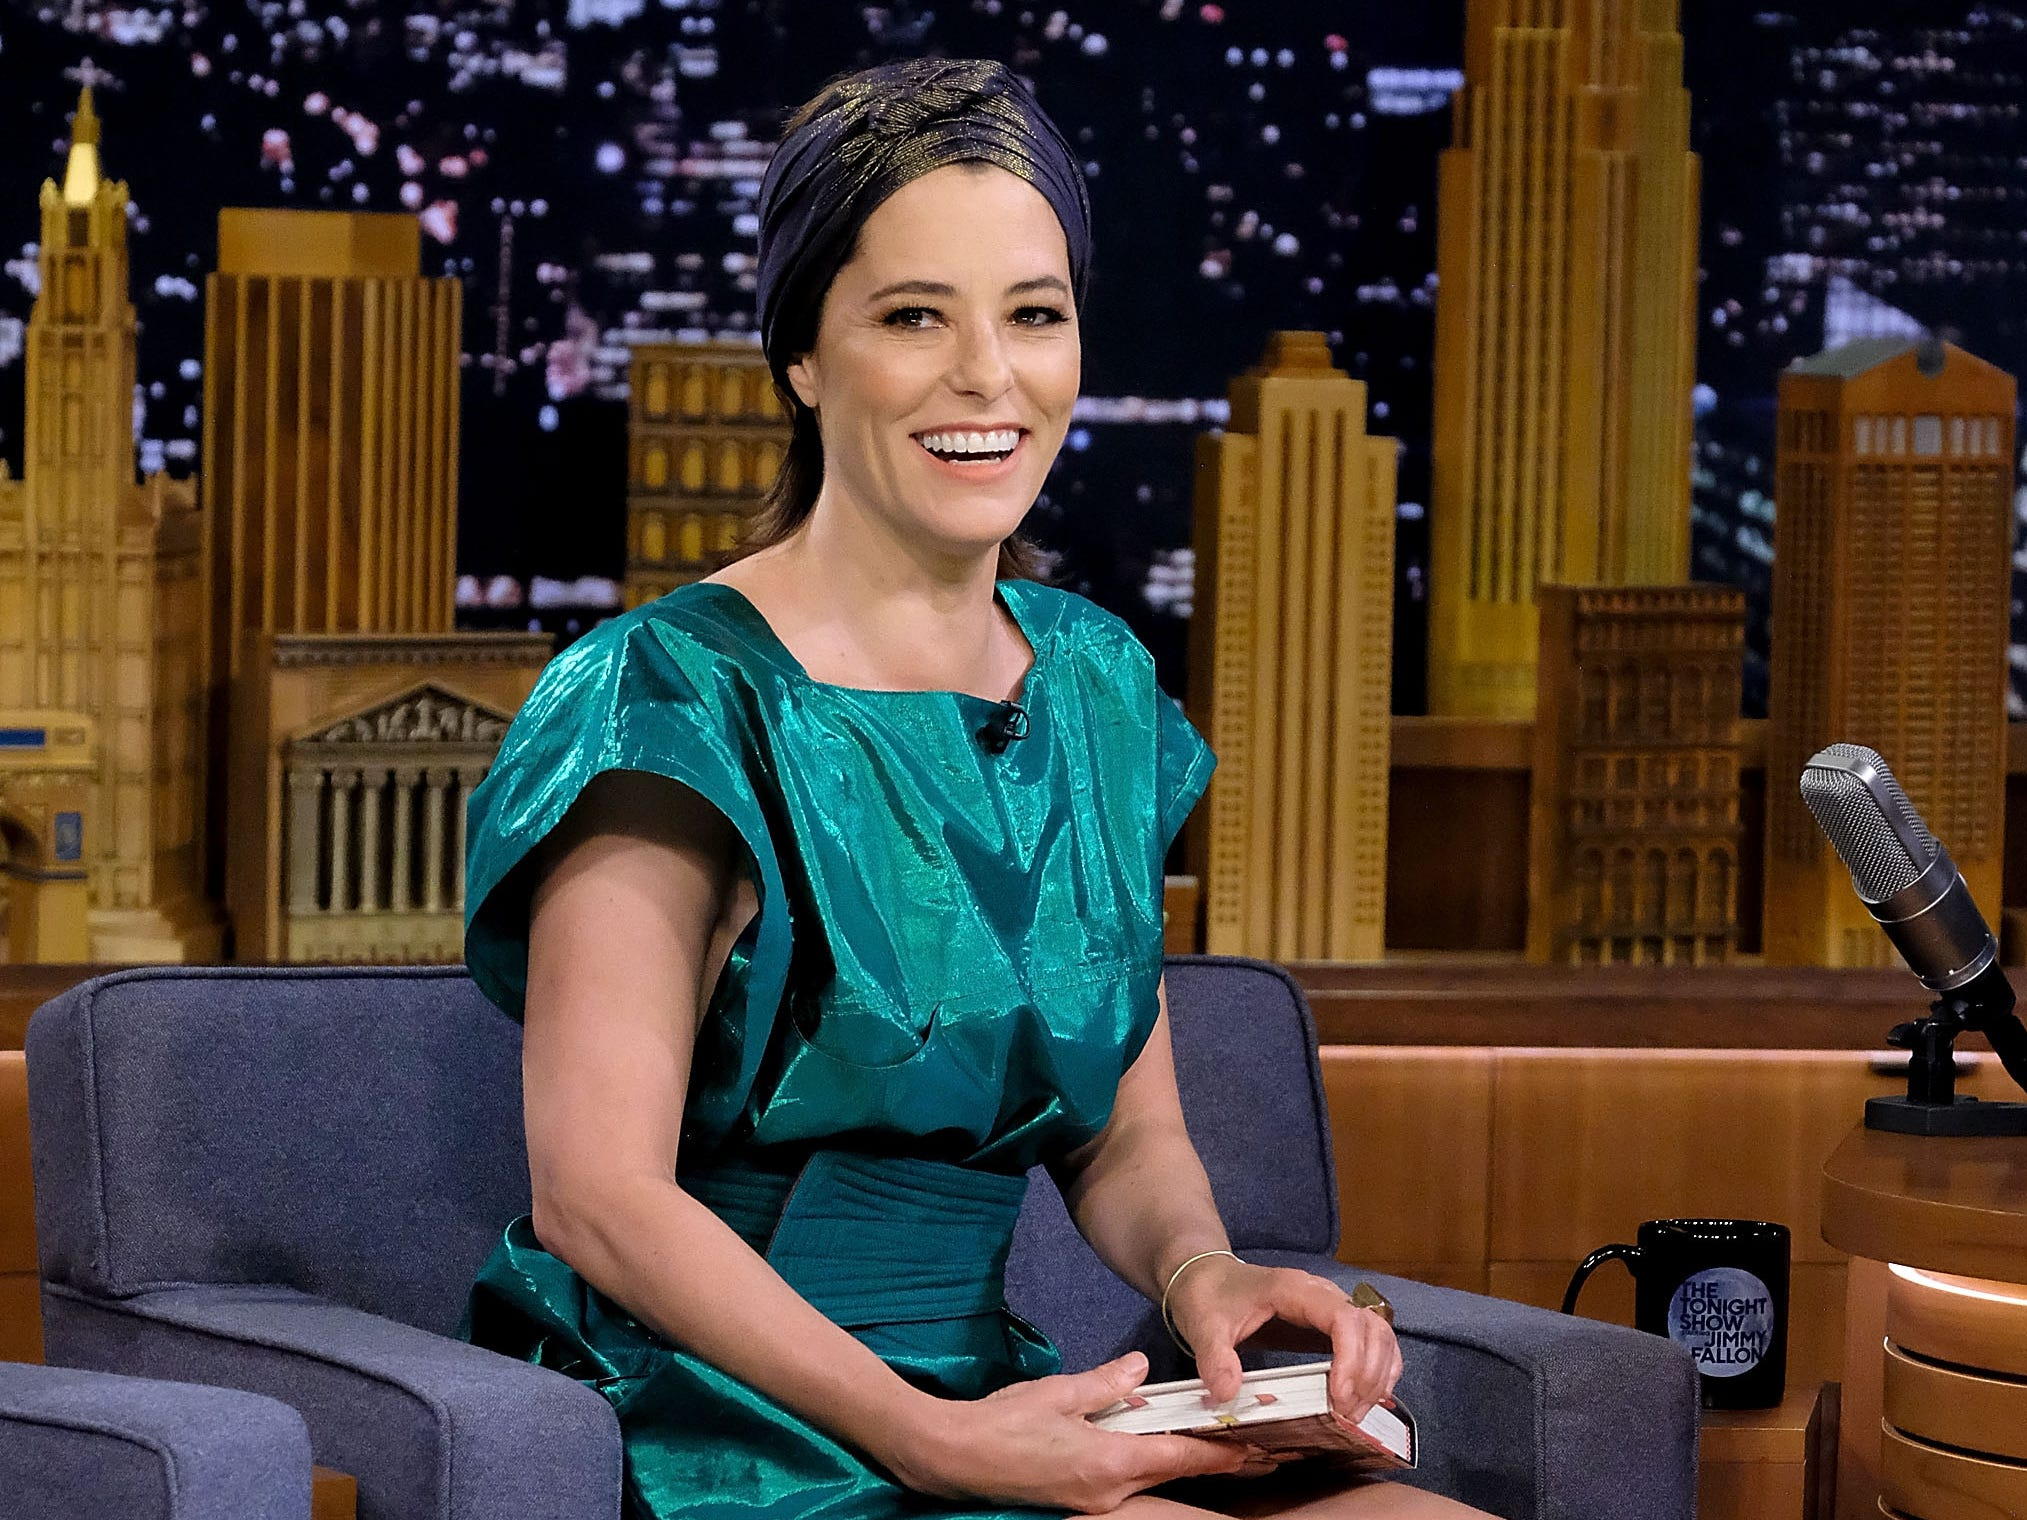 "NEW YORK, NY - JULY 23: Parker Posey visits ""The Tonight Show Starring Jimmy Fallon"" at Rockefeller Center on July 23, 2018 in New York City.  (Photo by Jamie McCarthy/Getty Images) ORG XMIT: 775196199 ORIG FILE ID: 1004379756"